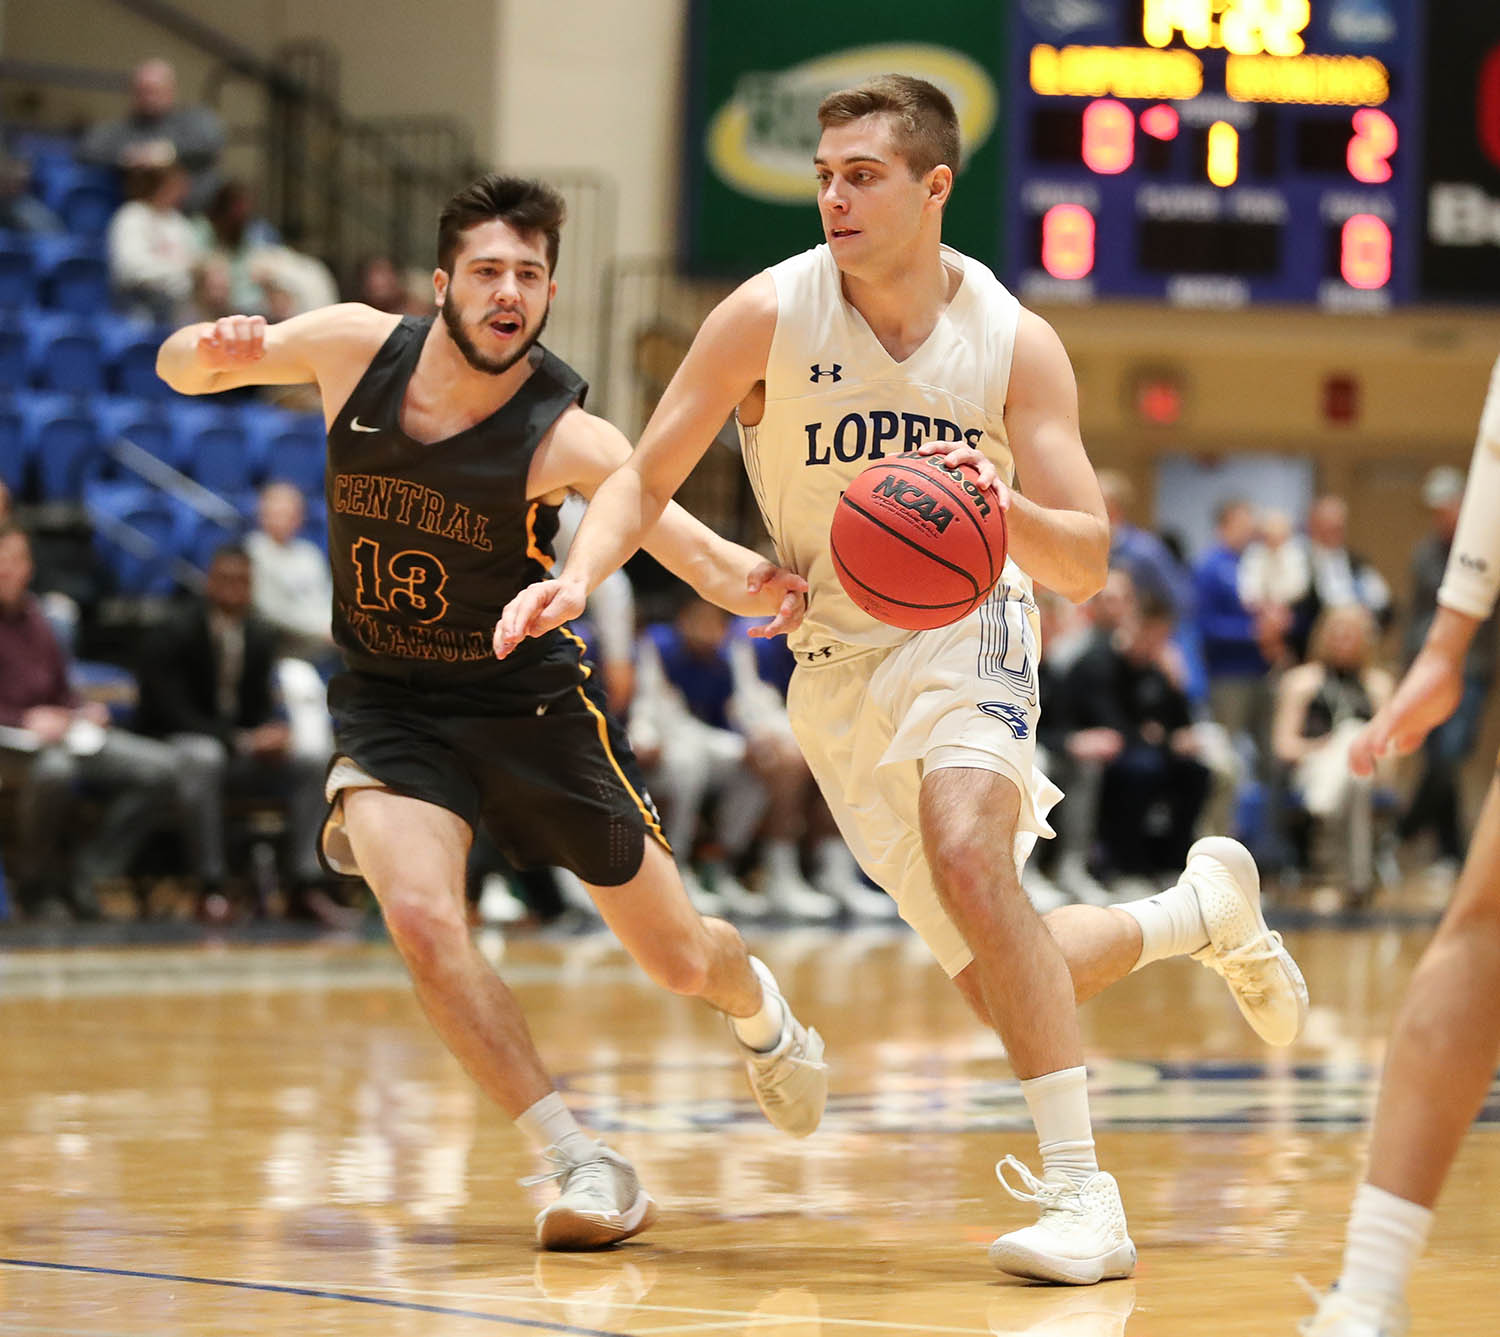 Redshirt senior Morgan Soucie is having a breakout season for the UNK men's basketball team. He leads the Lopers in minutes played, points, rebounds, assists and blocks. (Photos by Corbey R. Dorsey, UNK Communications)